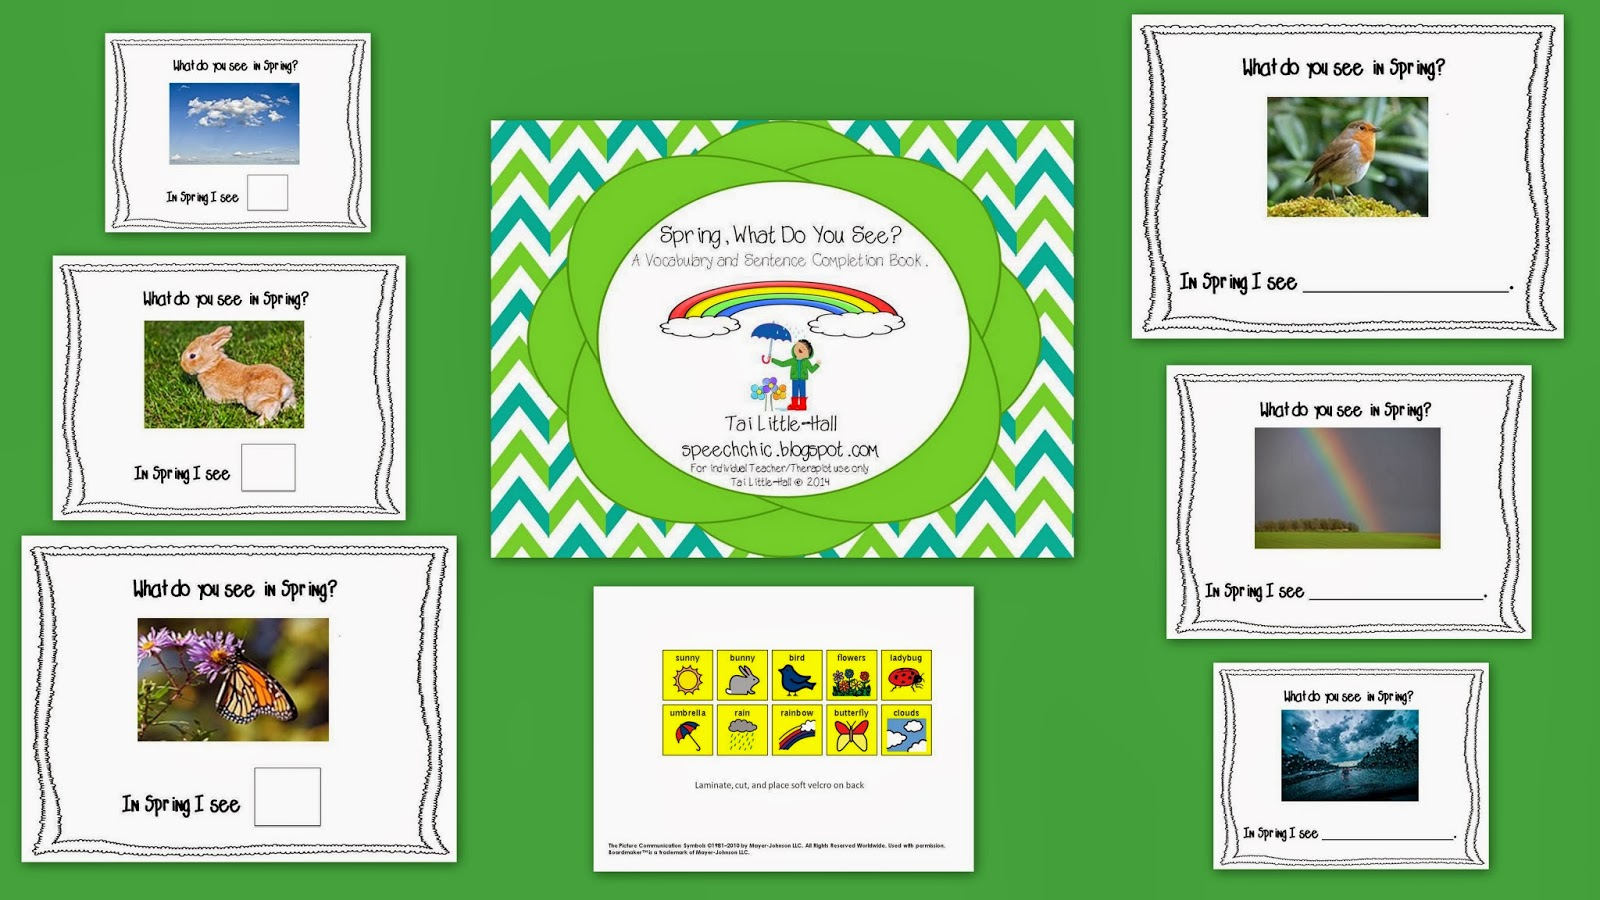 http://www.teacherspayteachers.com/Product/Spring-What-Do-You-See-A-Vocabulary-Matching-Book-1116277